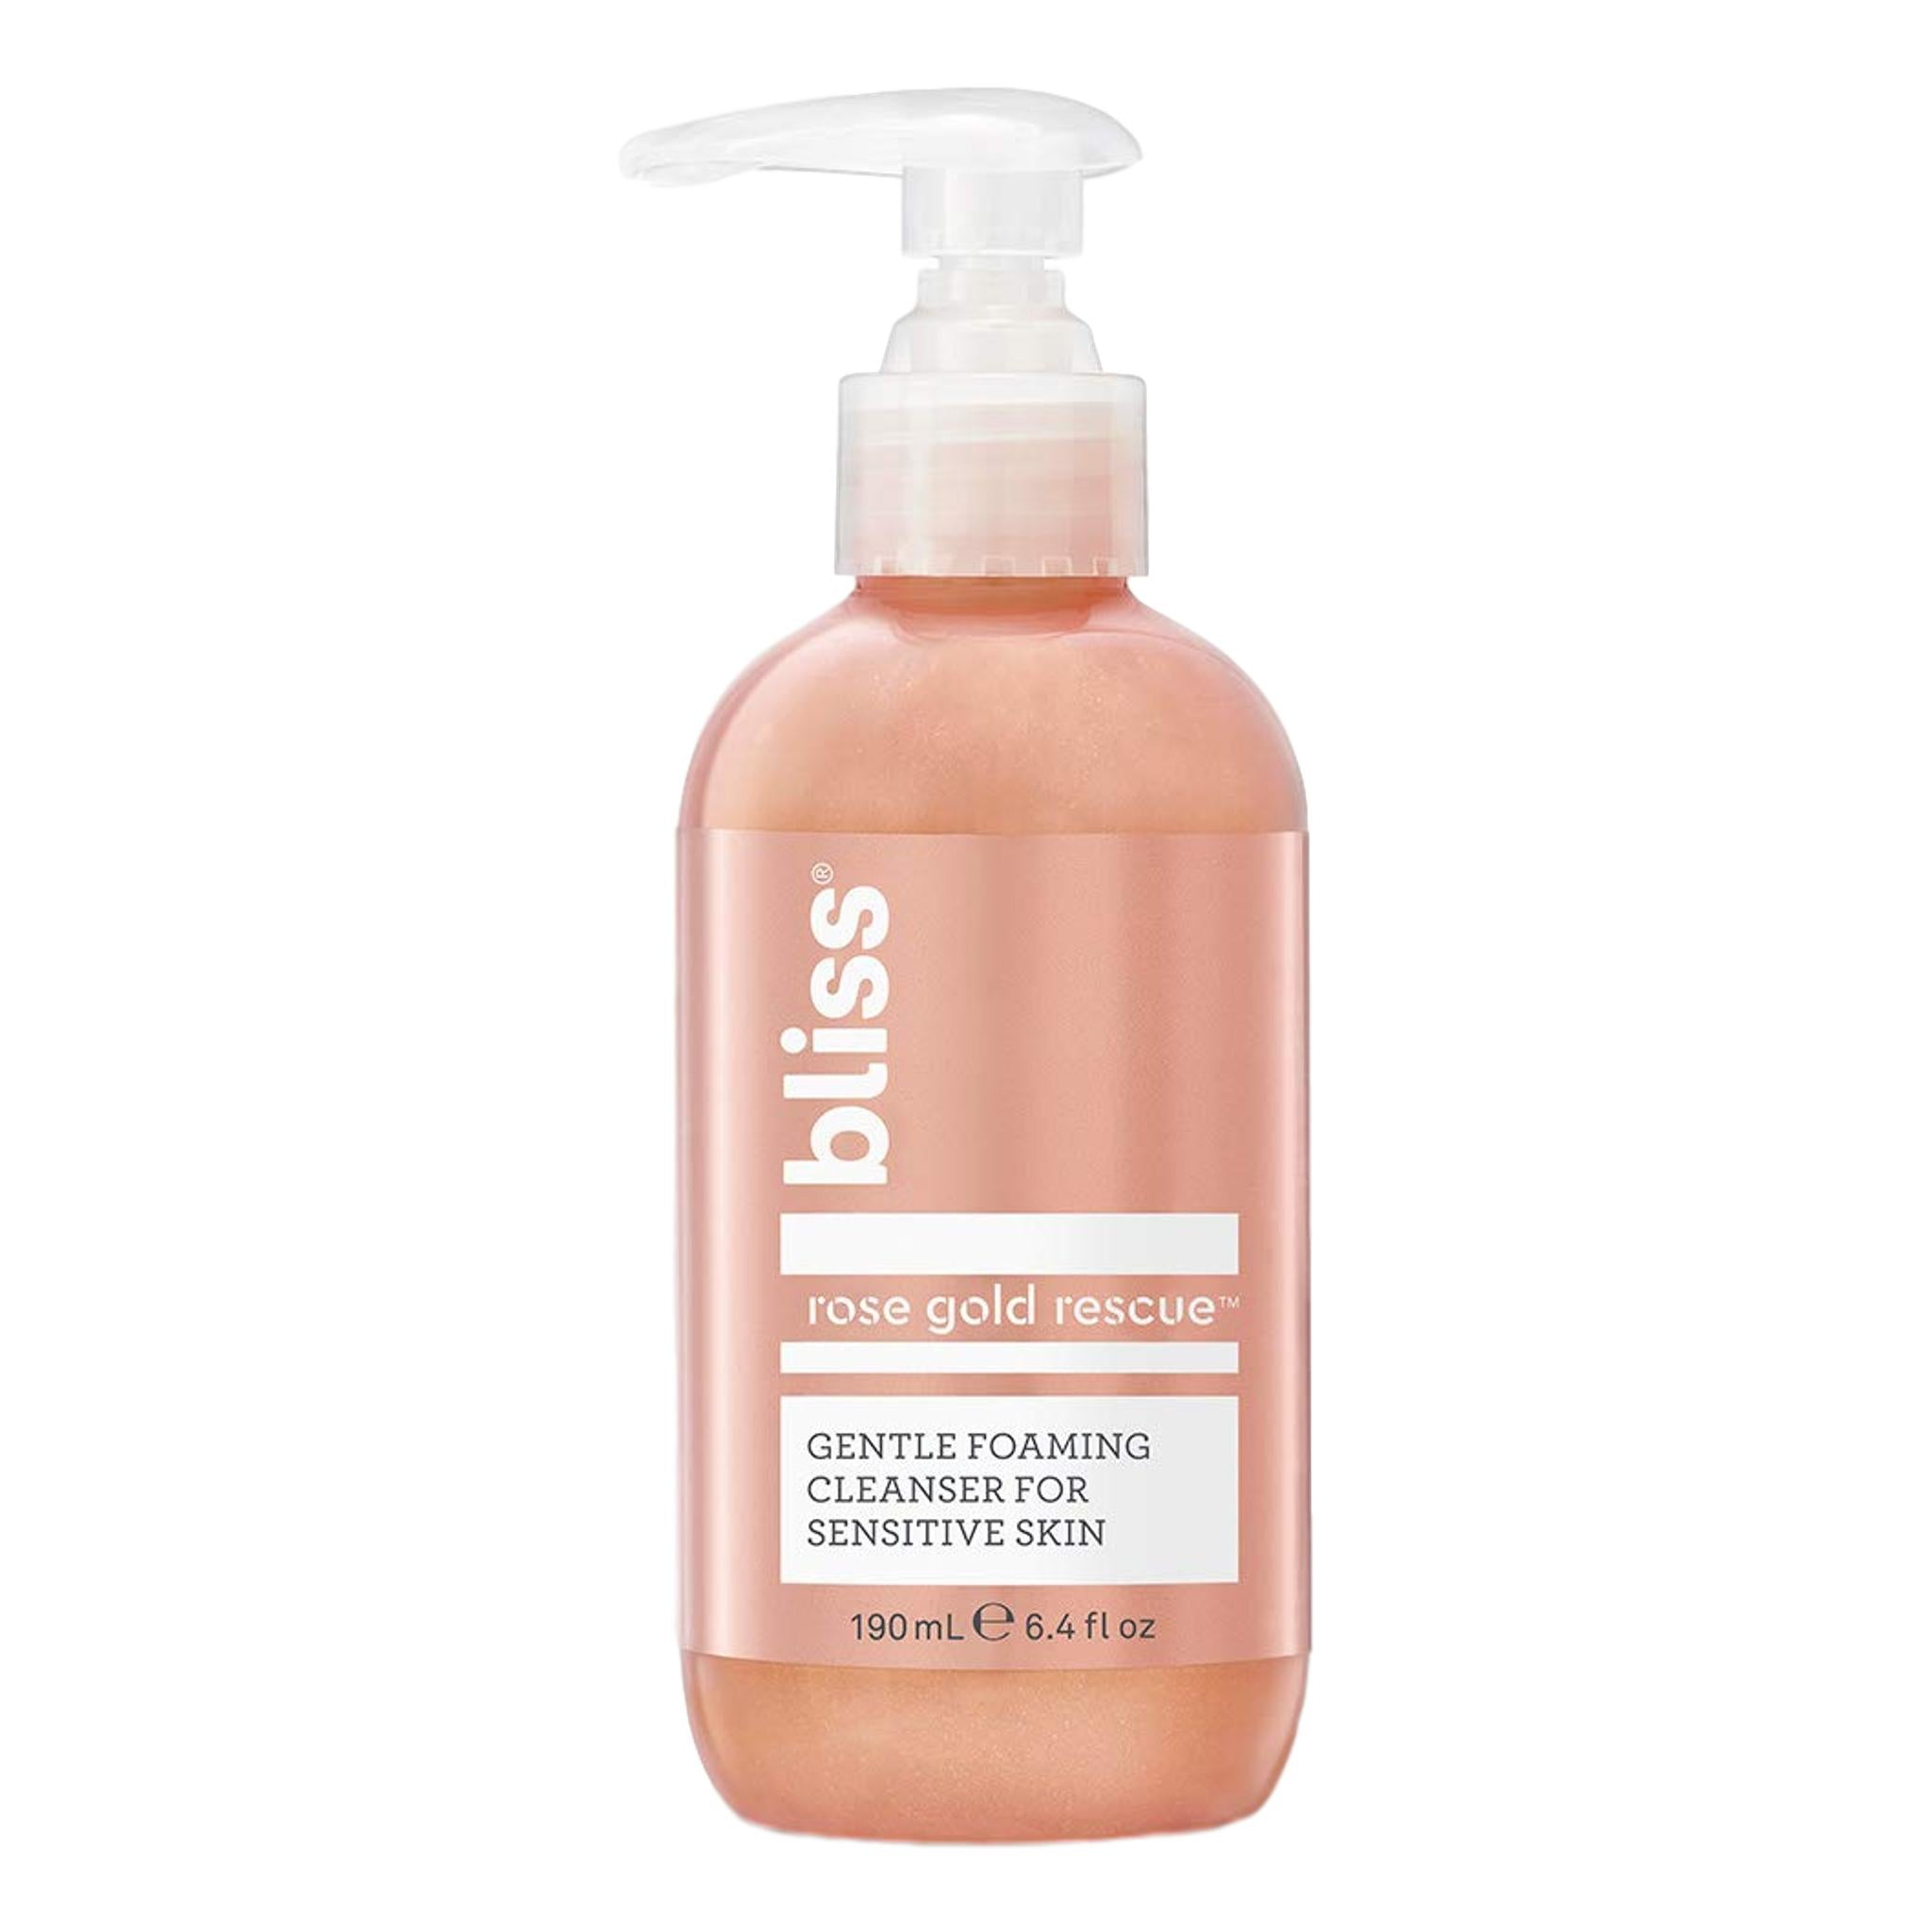 Bliss Rose Gold Rescue Cleanser, 6.4oz, cleanser, London Loves Beauty